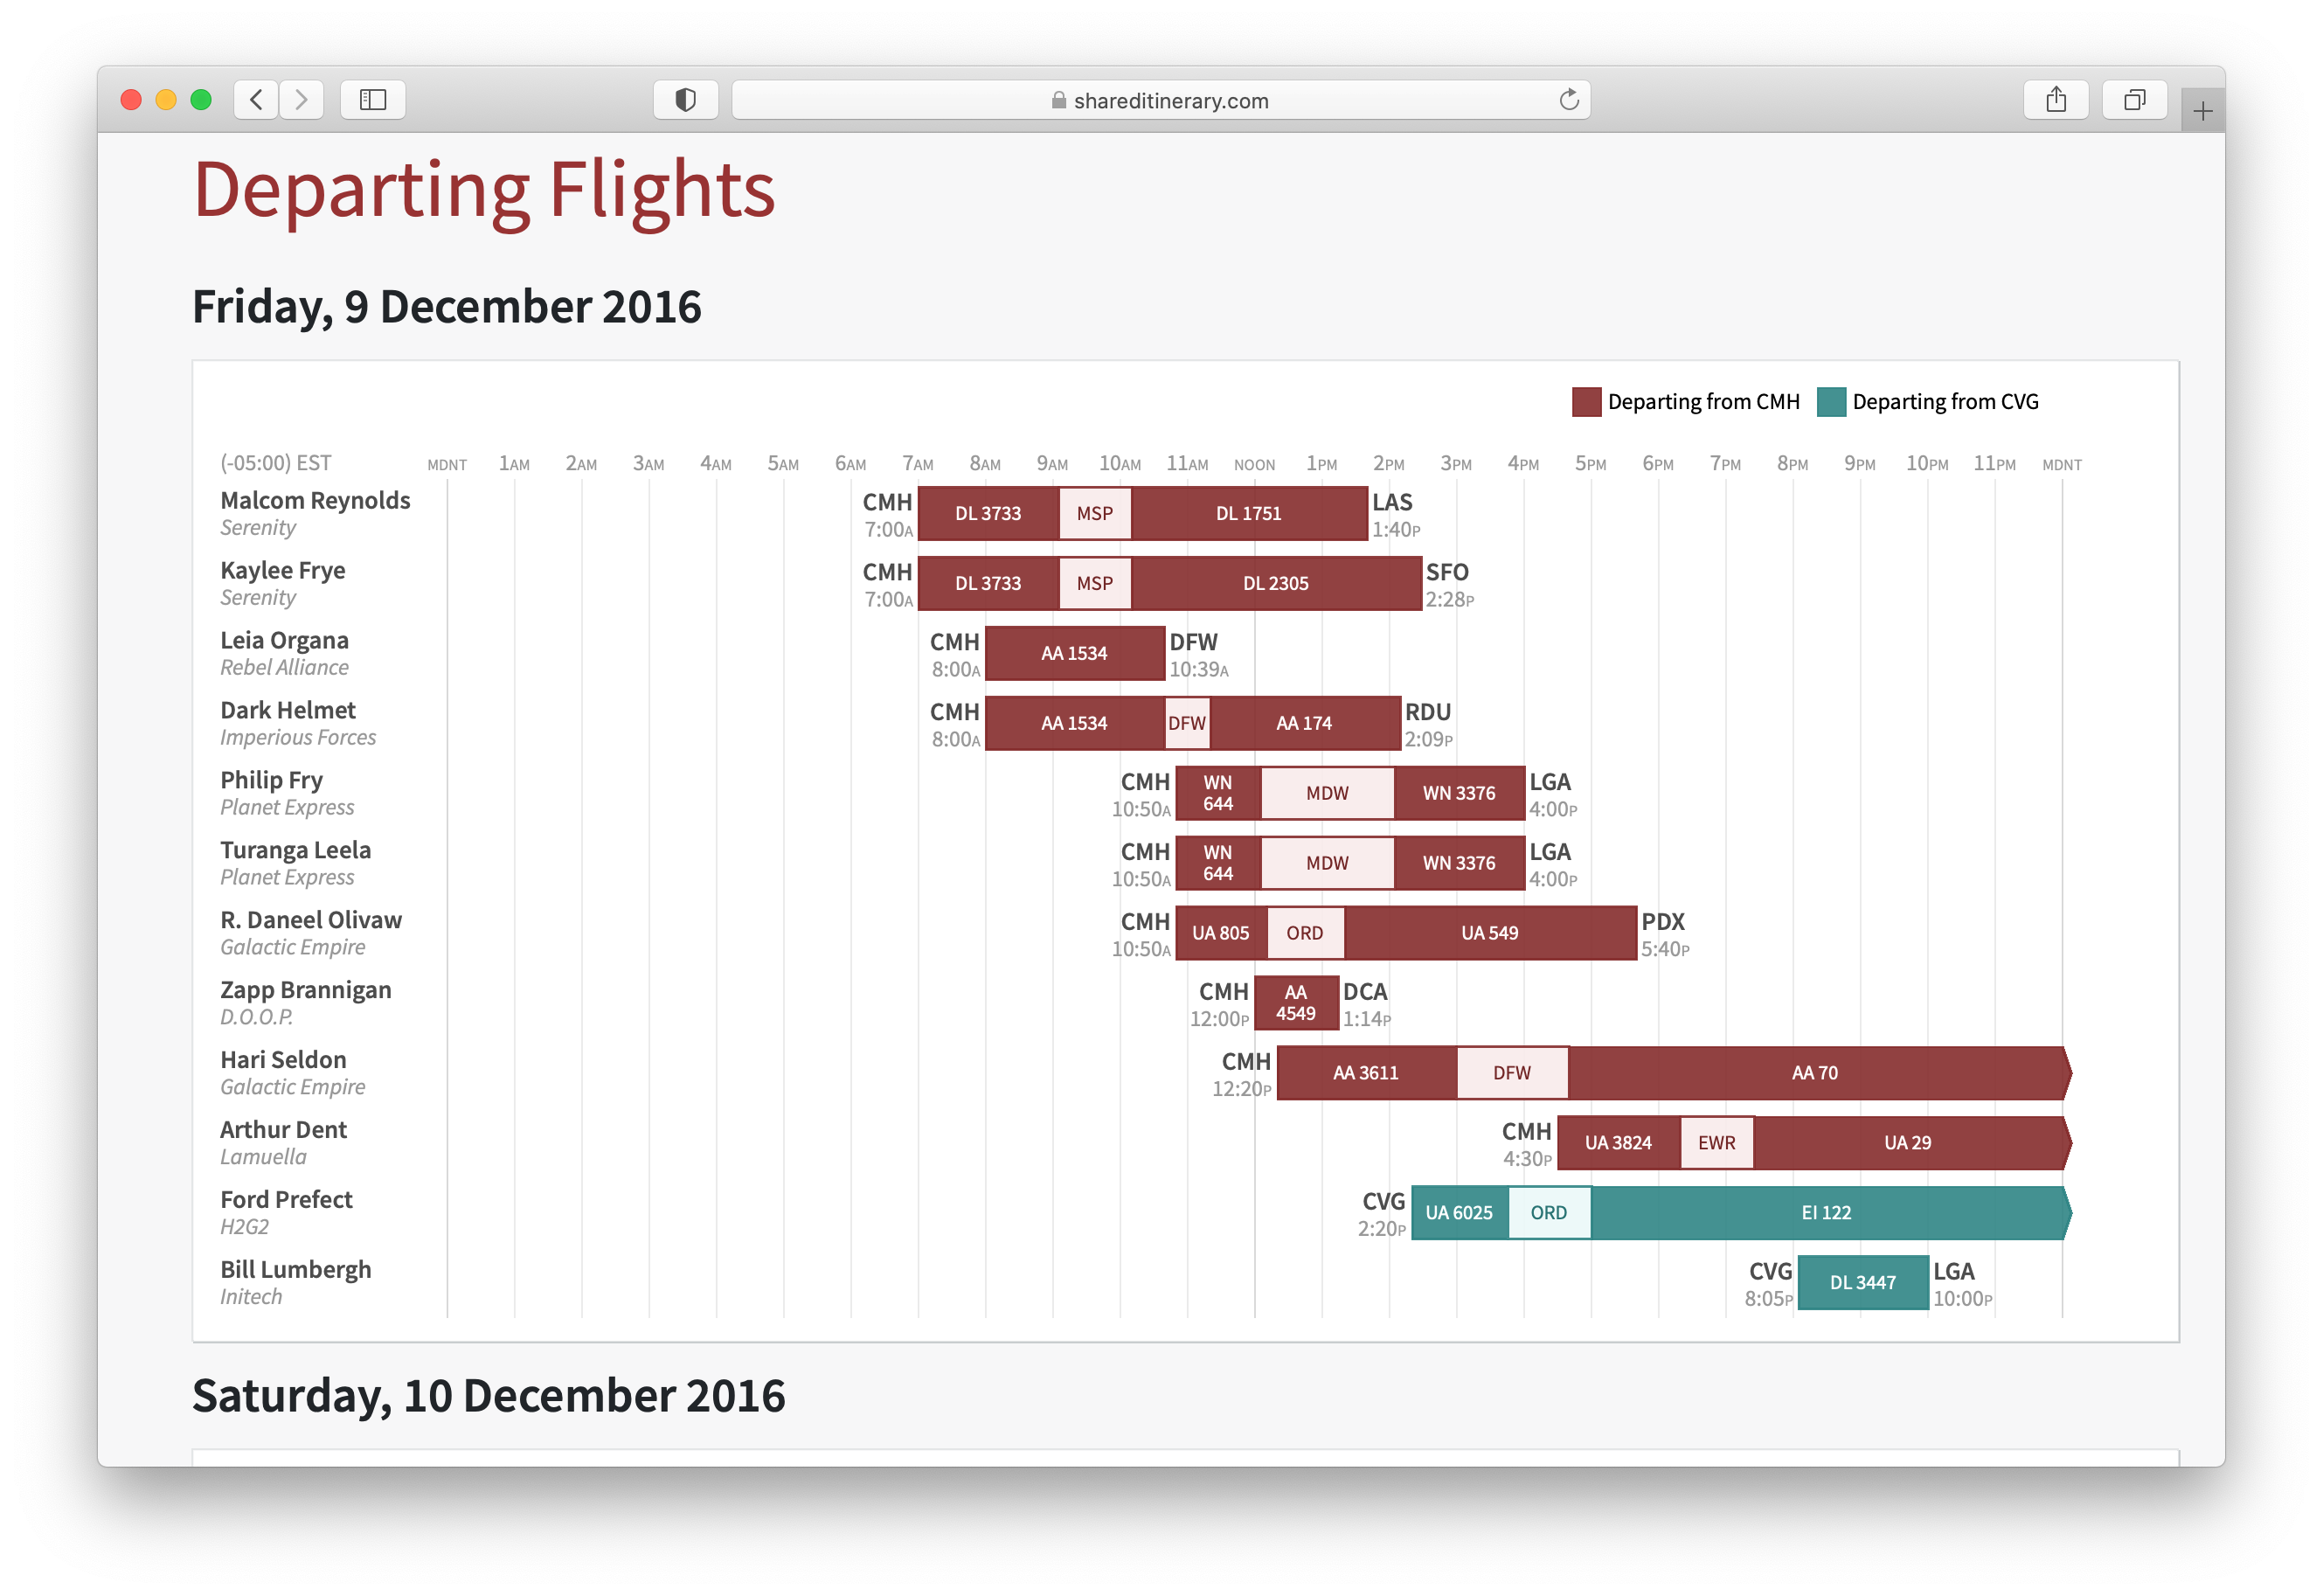 Event flight chart on Shared Itinerary. The X-axis shows time, and the Y axis is a list of travelers. Horizontal bars are plotted for each traveler showing their flight times, so that it's easy to compare when people are arriving or departing at similar times.